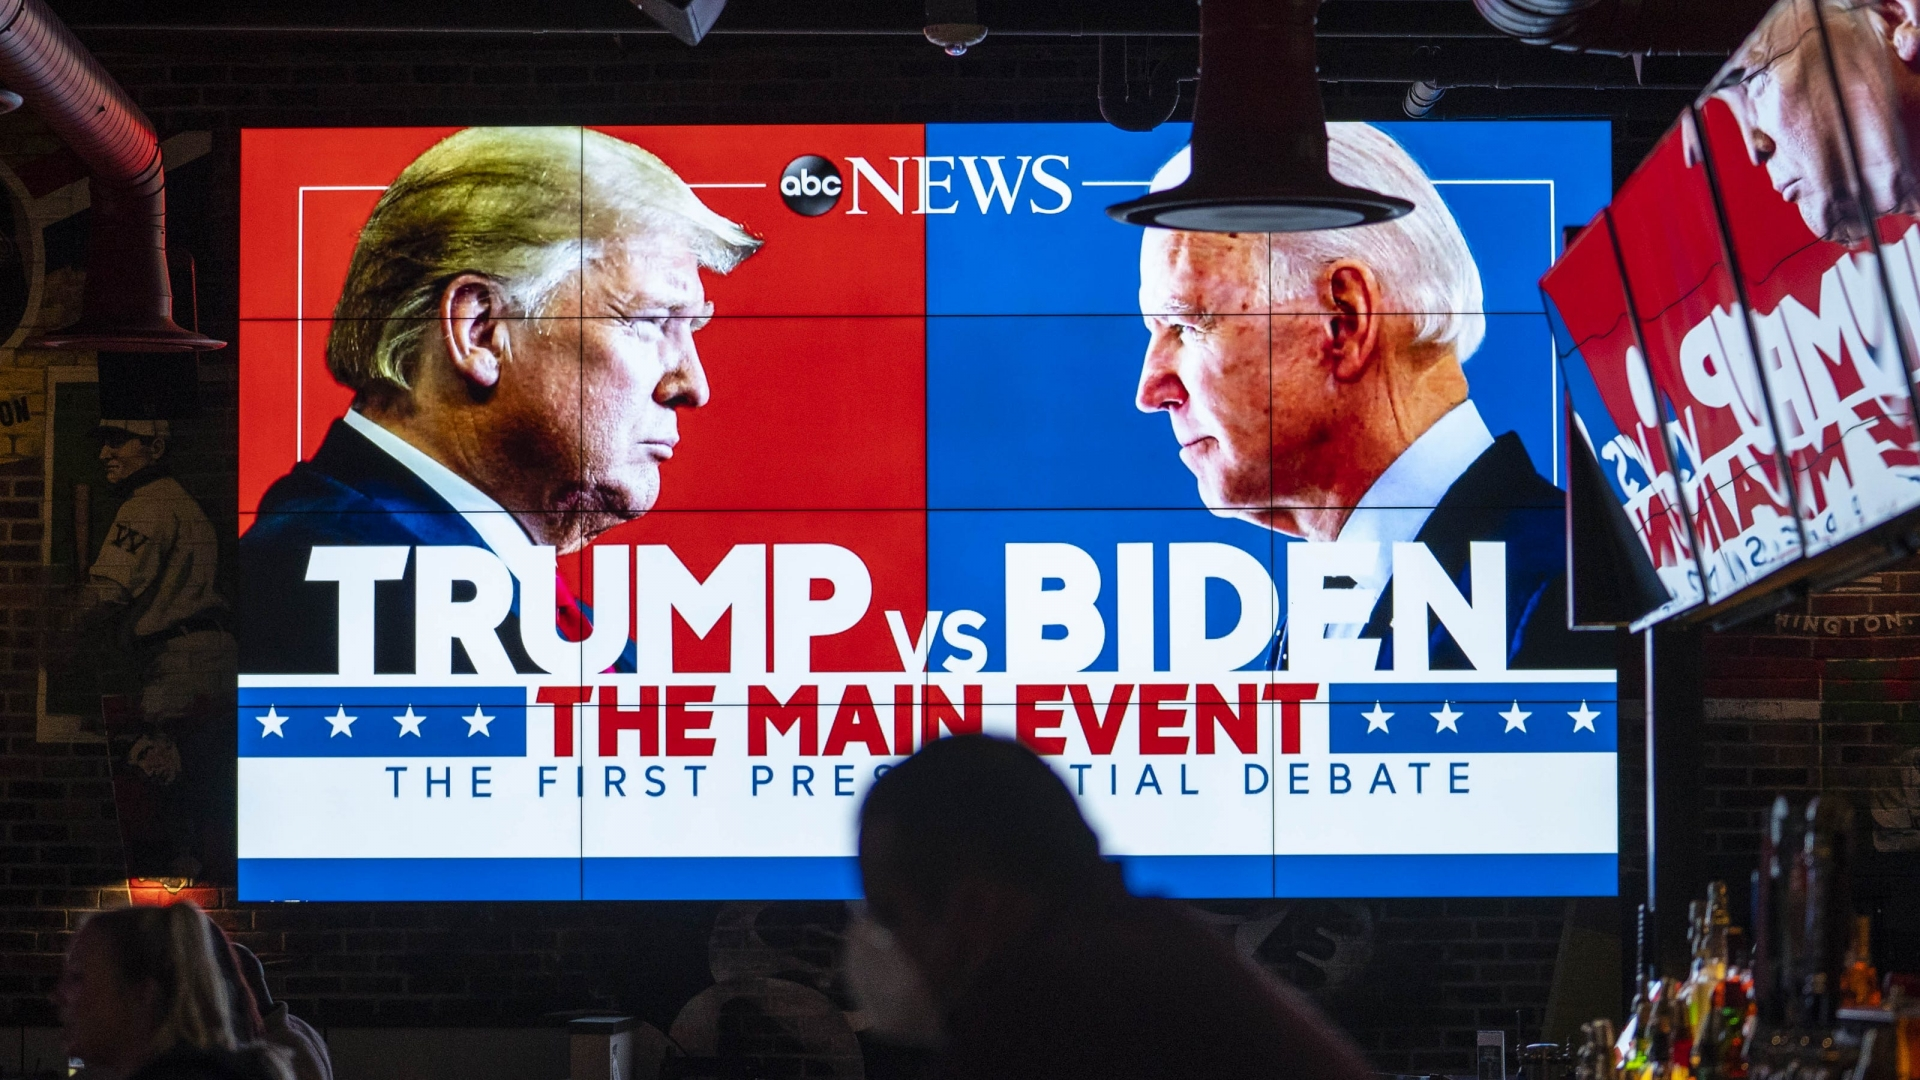 A new poll shows Democratic nominee Joe Biden with a 14 point lead nationally over President Trump, following the first presidential debate last week